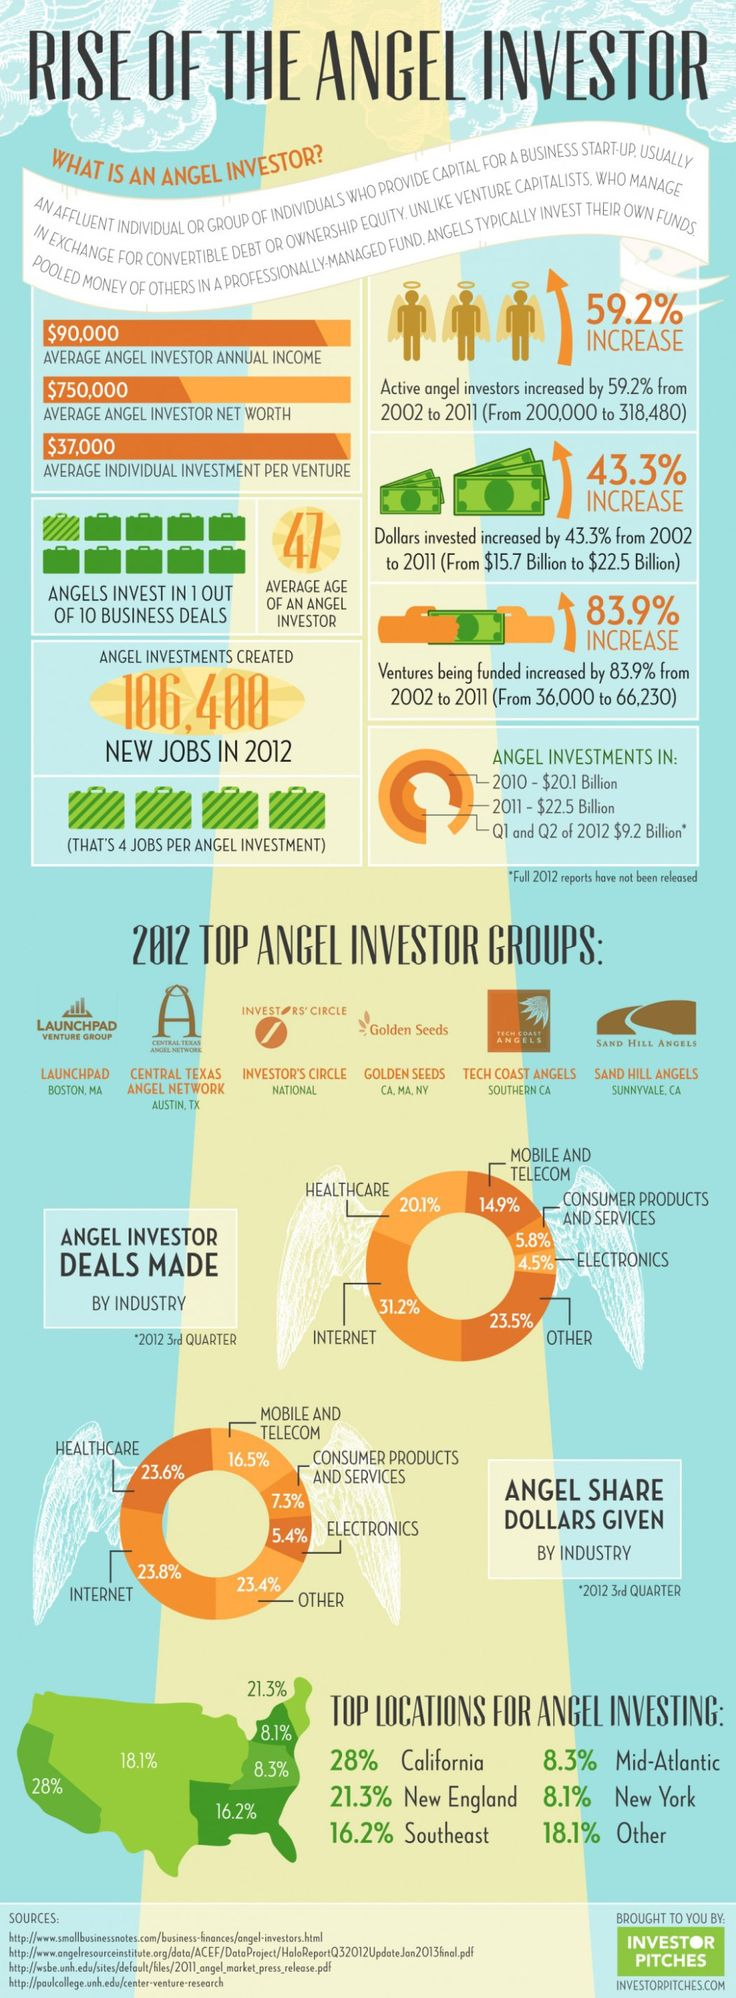 rise-of-the-angel-investor